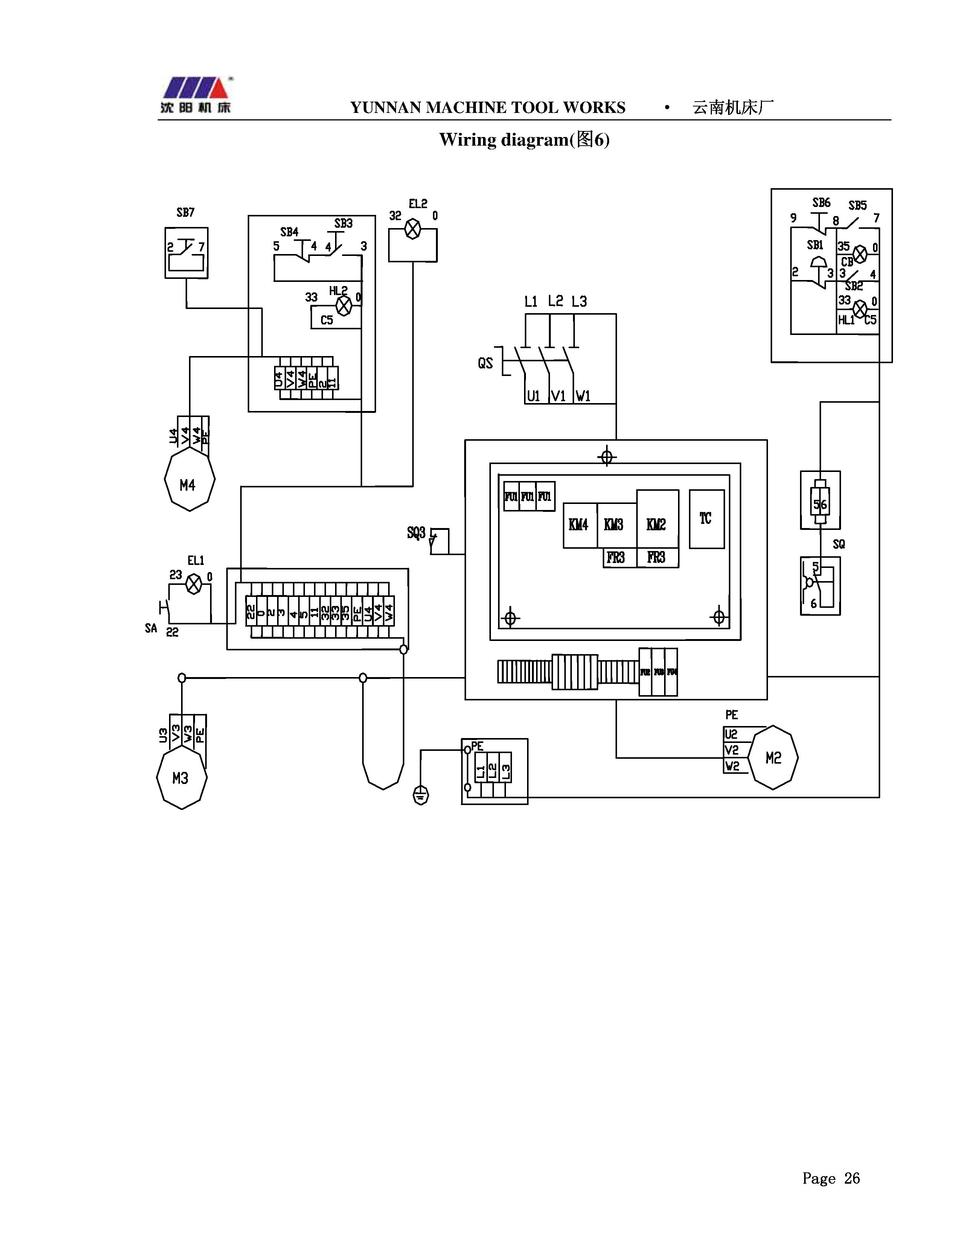 Prestige Alarm Wiring Diagram likewise Mando Remote Starter Wiring Diagram together with Car Electronics C 470 471 1664 1665 1666 1667 also Clifford Remote Start Wiring Diagram together with 2015 Nissan Versa Wiring Diagram. on viper remote replacement parts